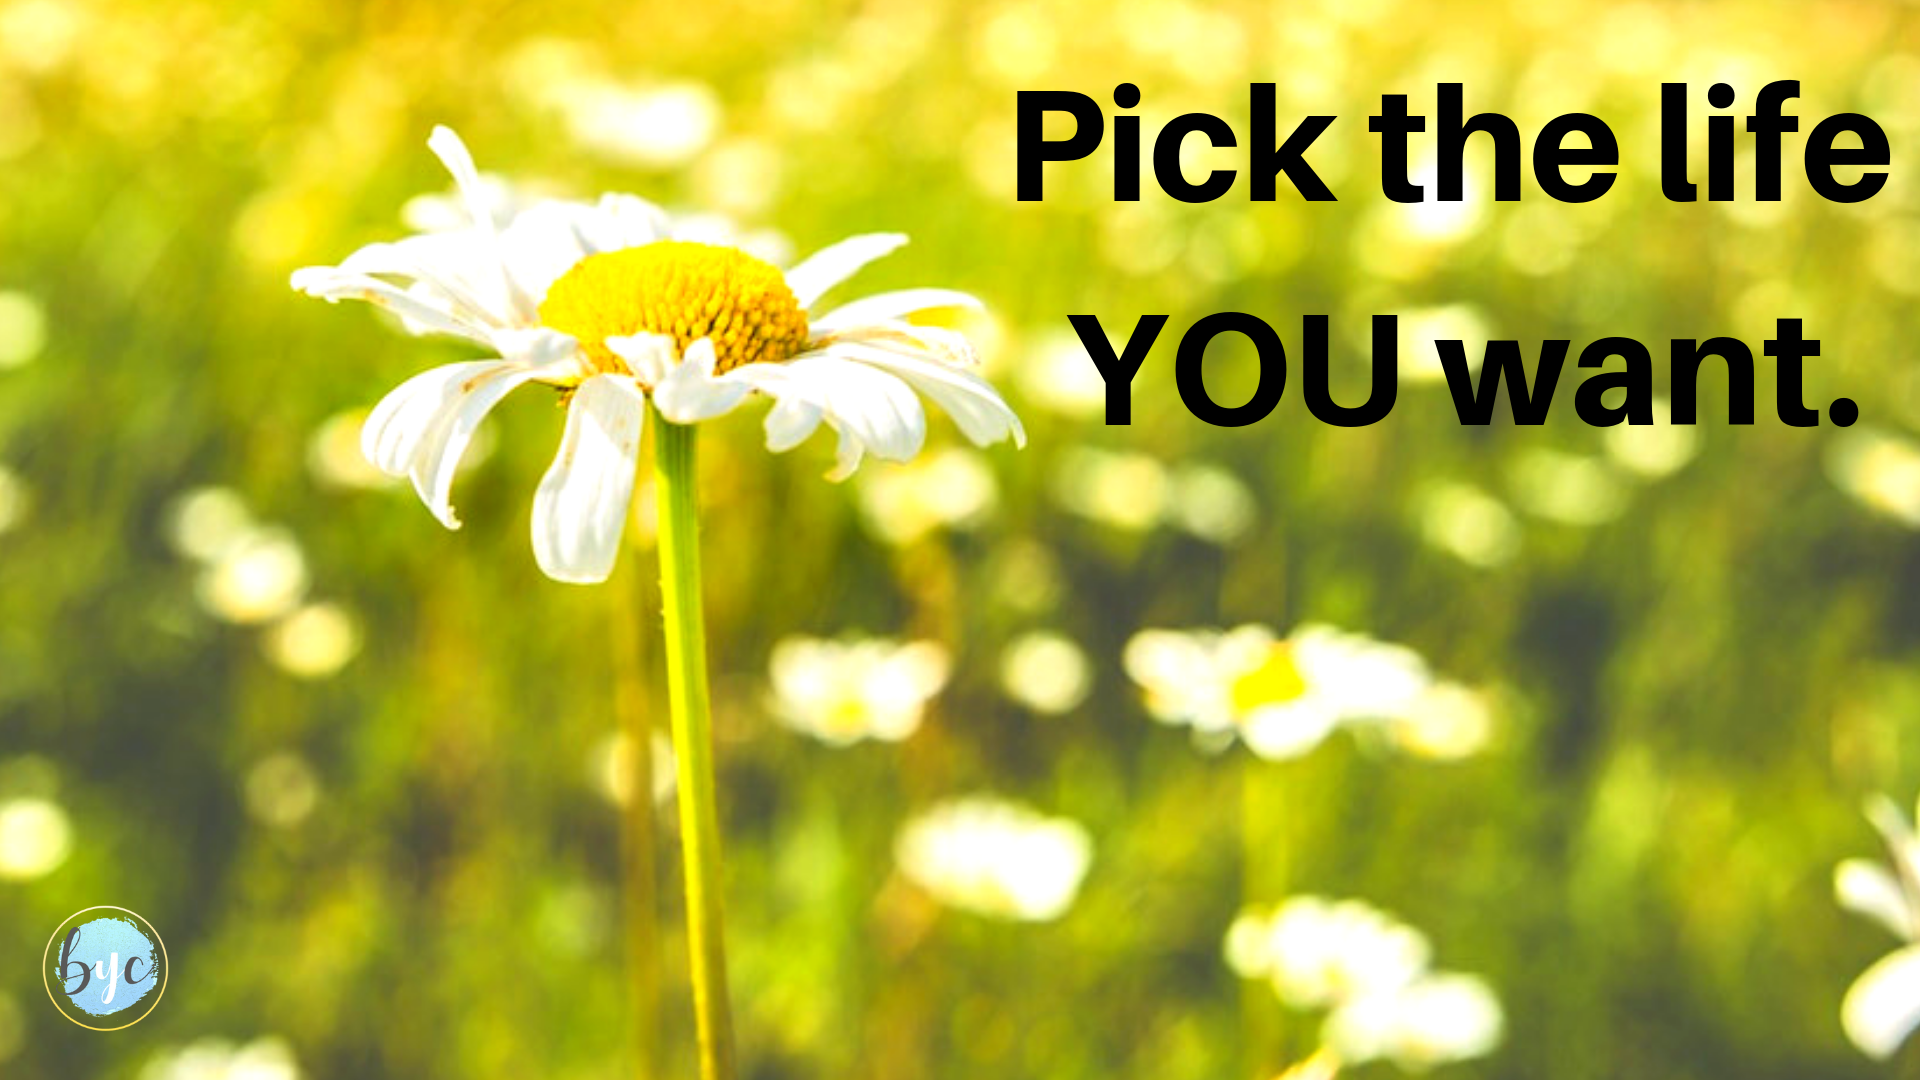 Pick the life YOU want.